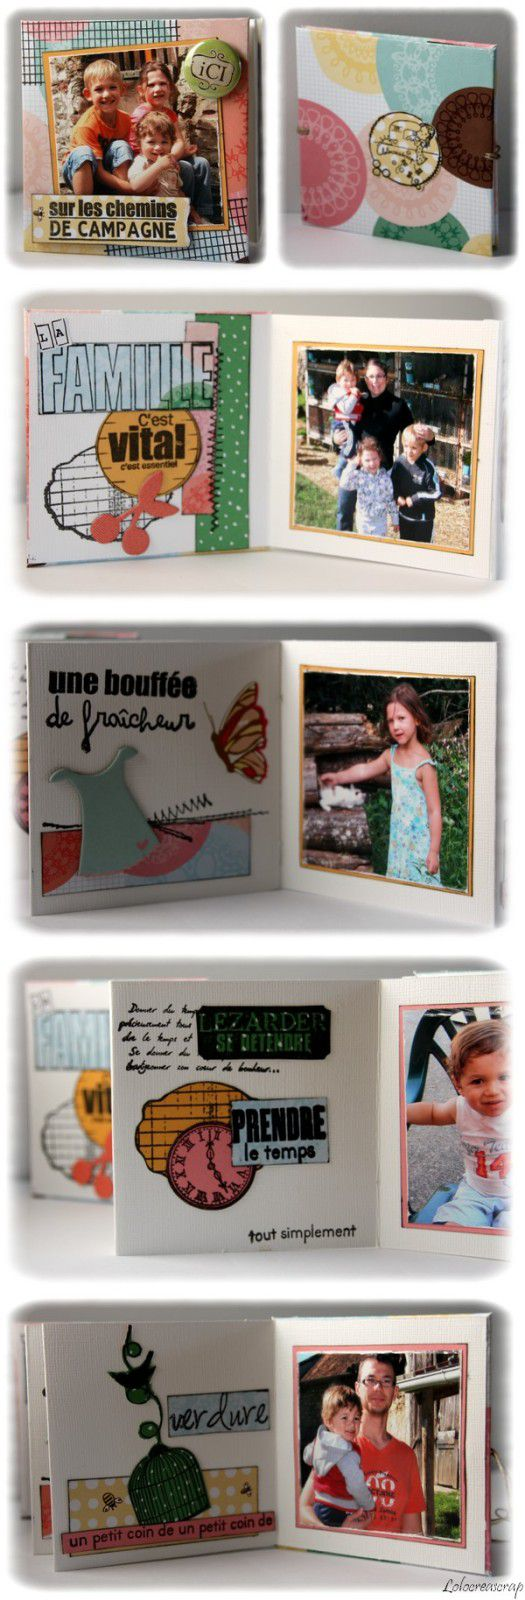 Projets-Prisca 3547